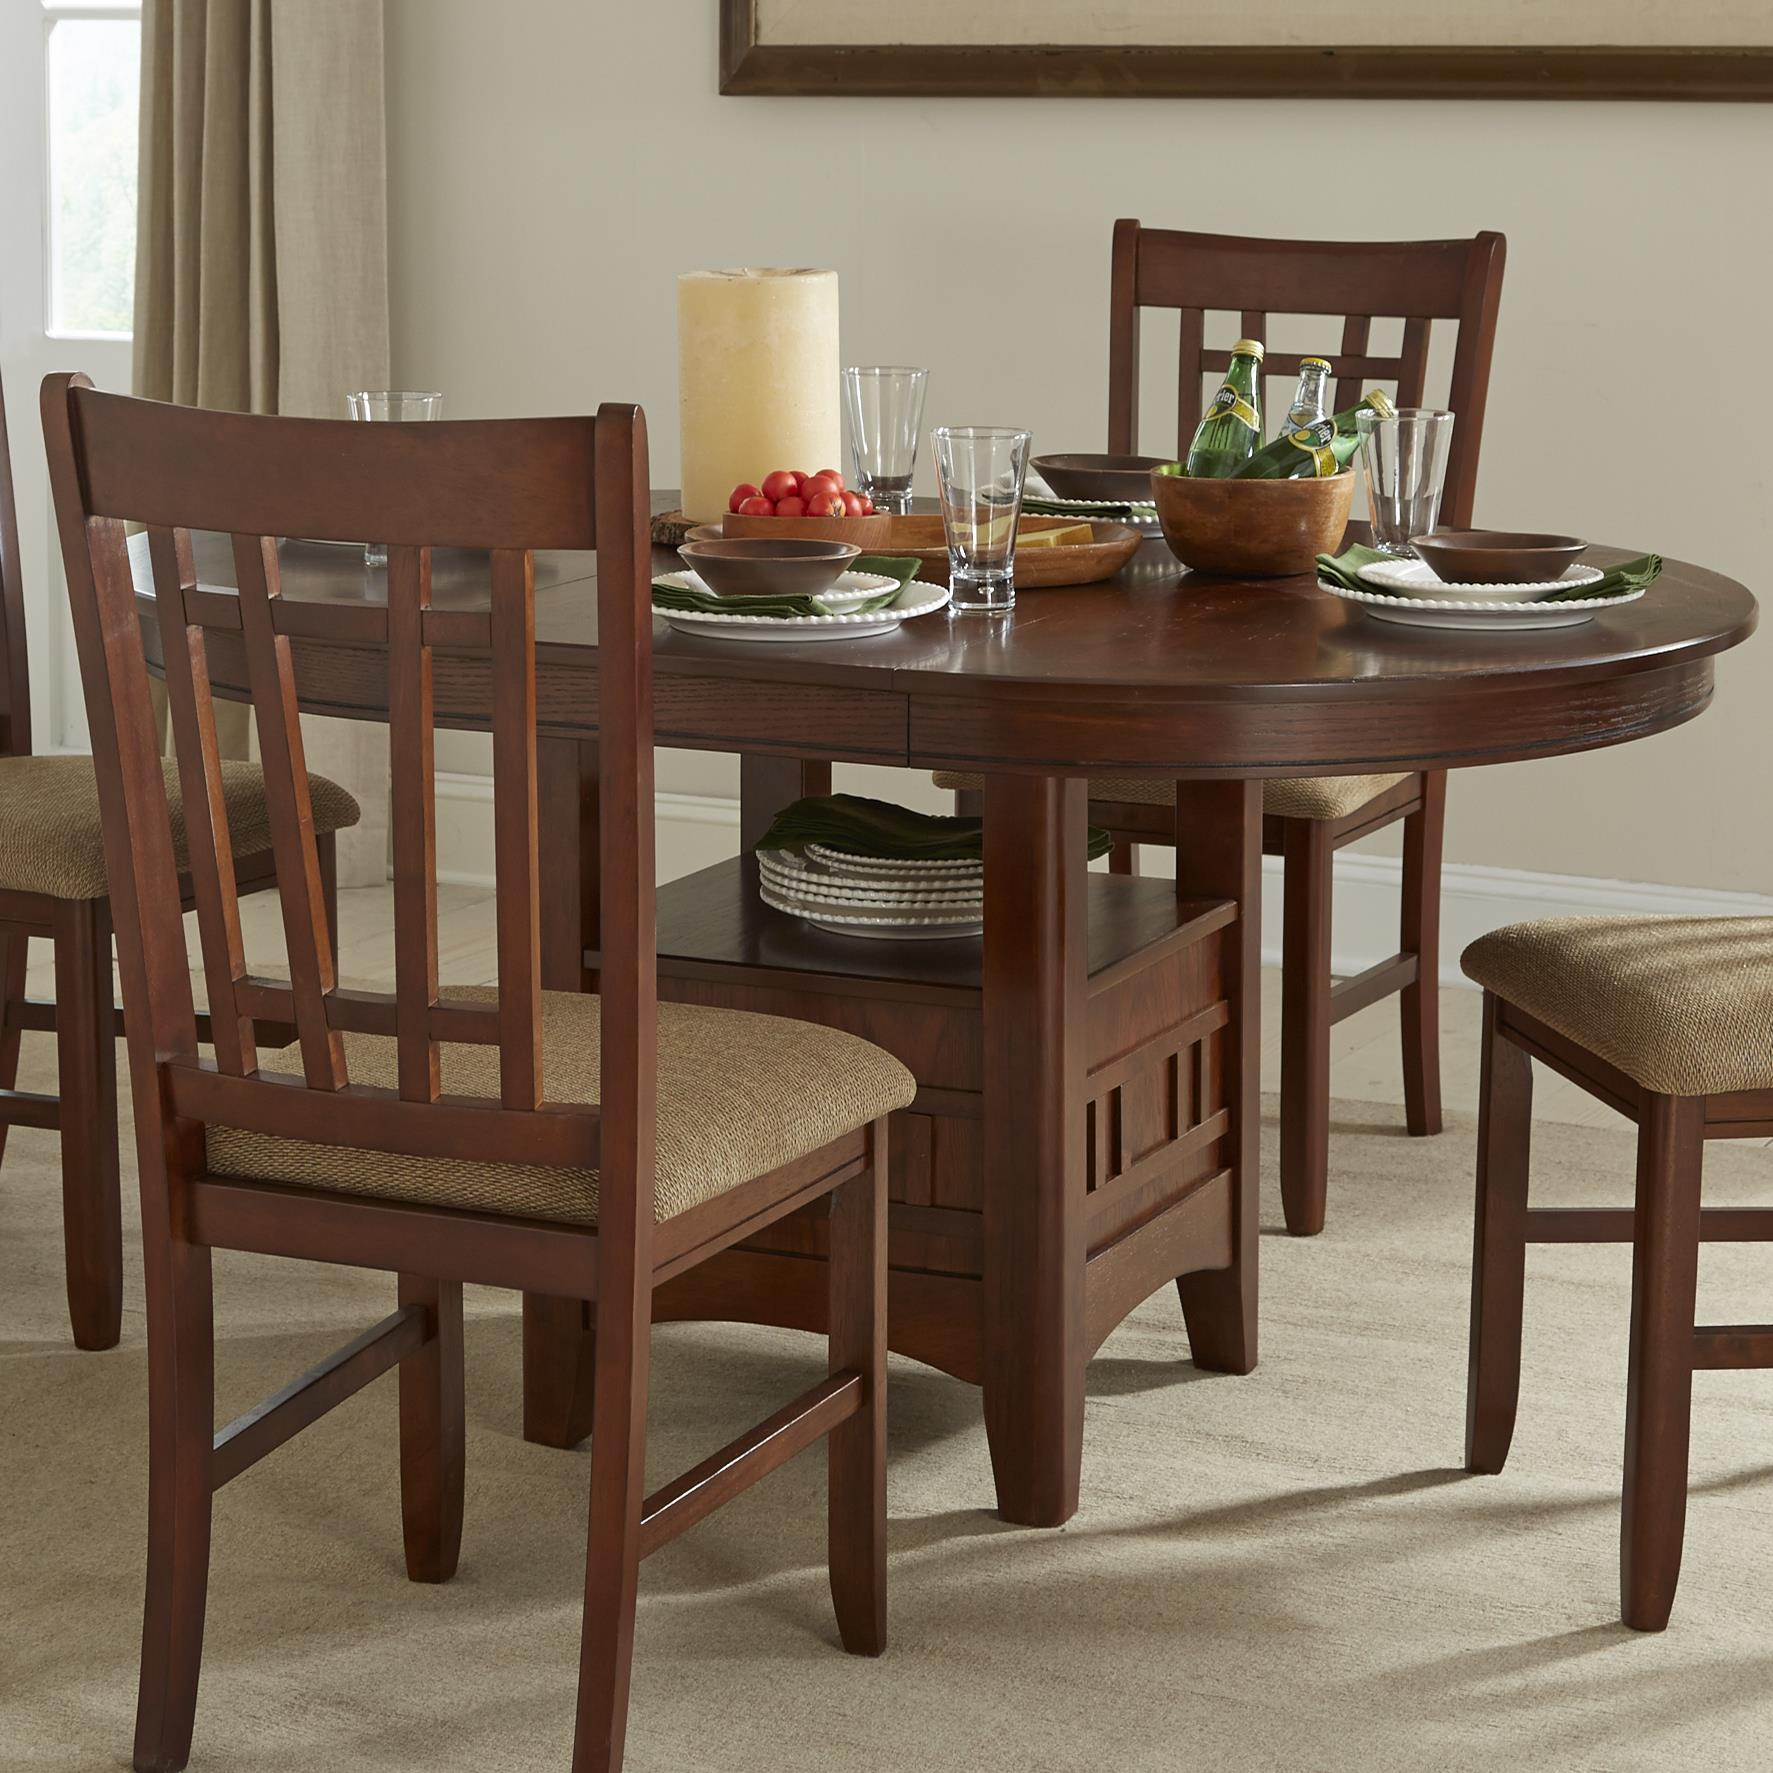 Intercon Mission Casuals Dining Table Ped Base & Top - Item Number: MI-TA-4260-DMI-BSE+TOP